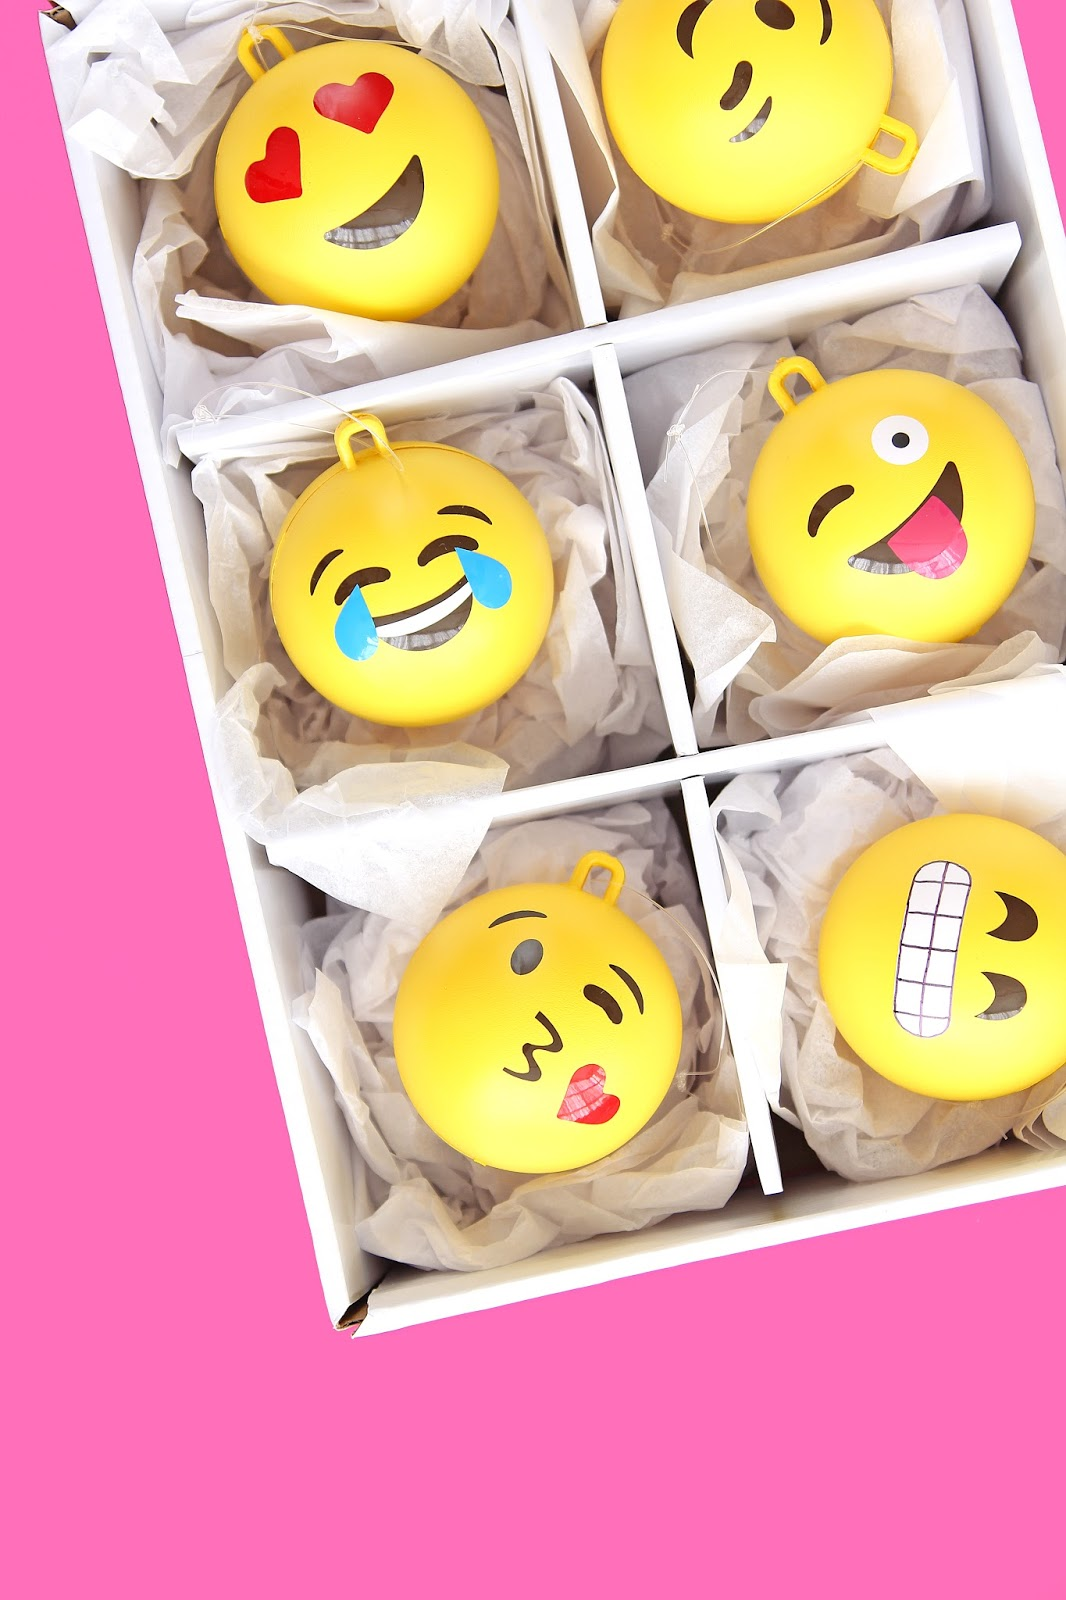 How To Make A Laughing Emoji : laughing, emoji, Emoji, Ornaments, Subtle, Revelry